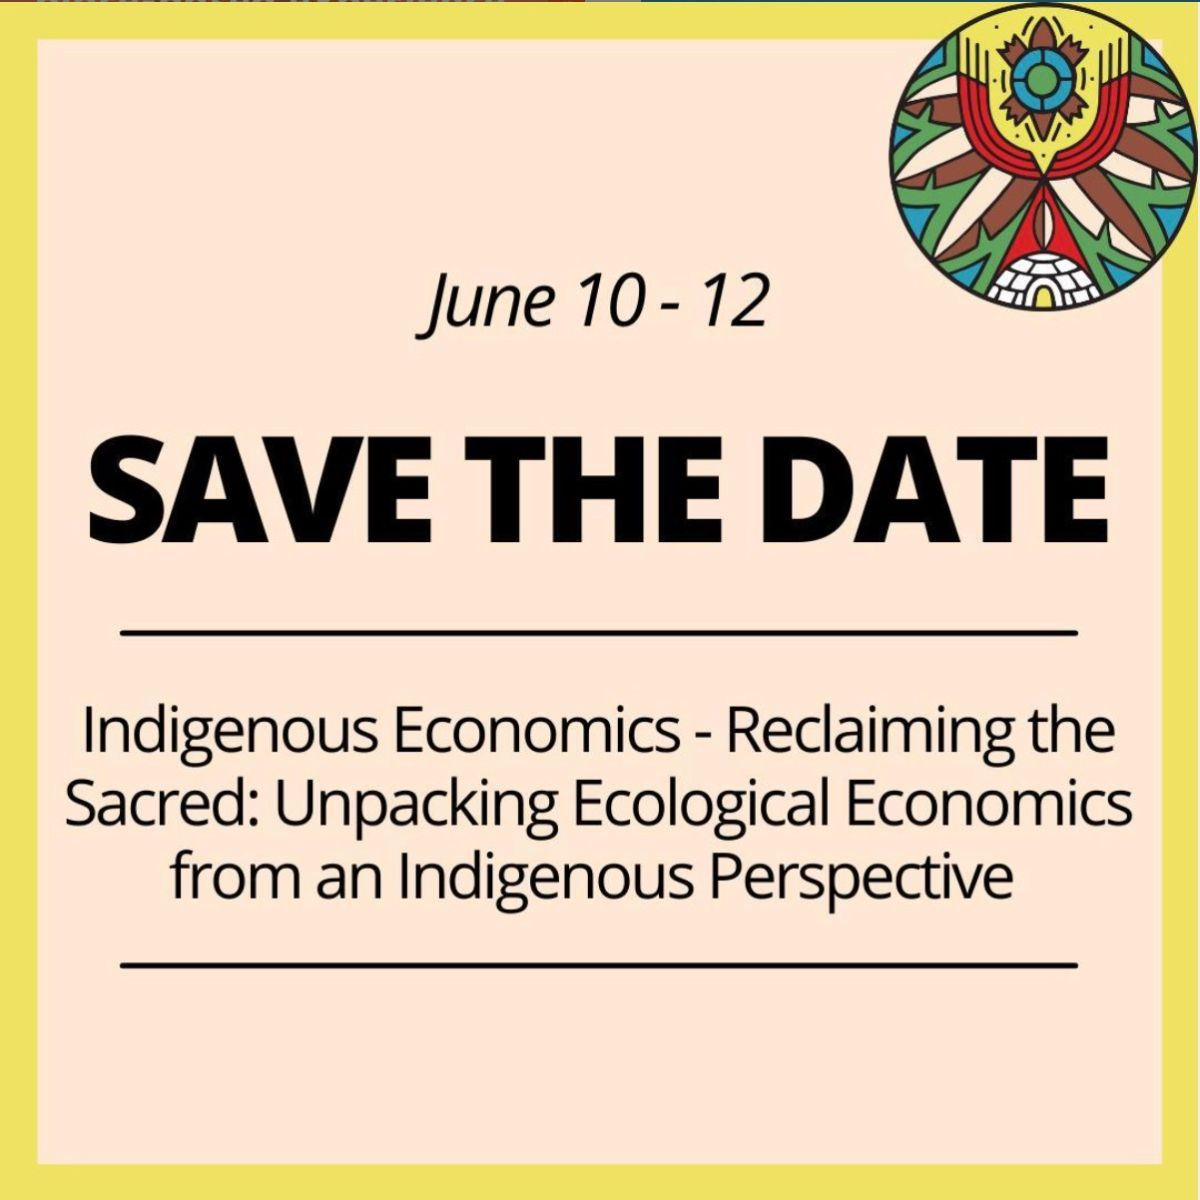 Indigenous Economics — Reclaiming the Sacred: Unpacking Ecological Economics from an Indigenous Perspective